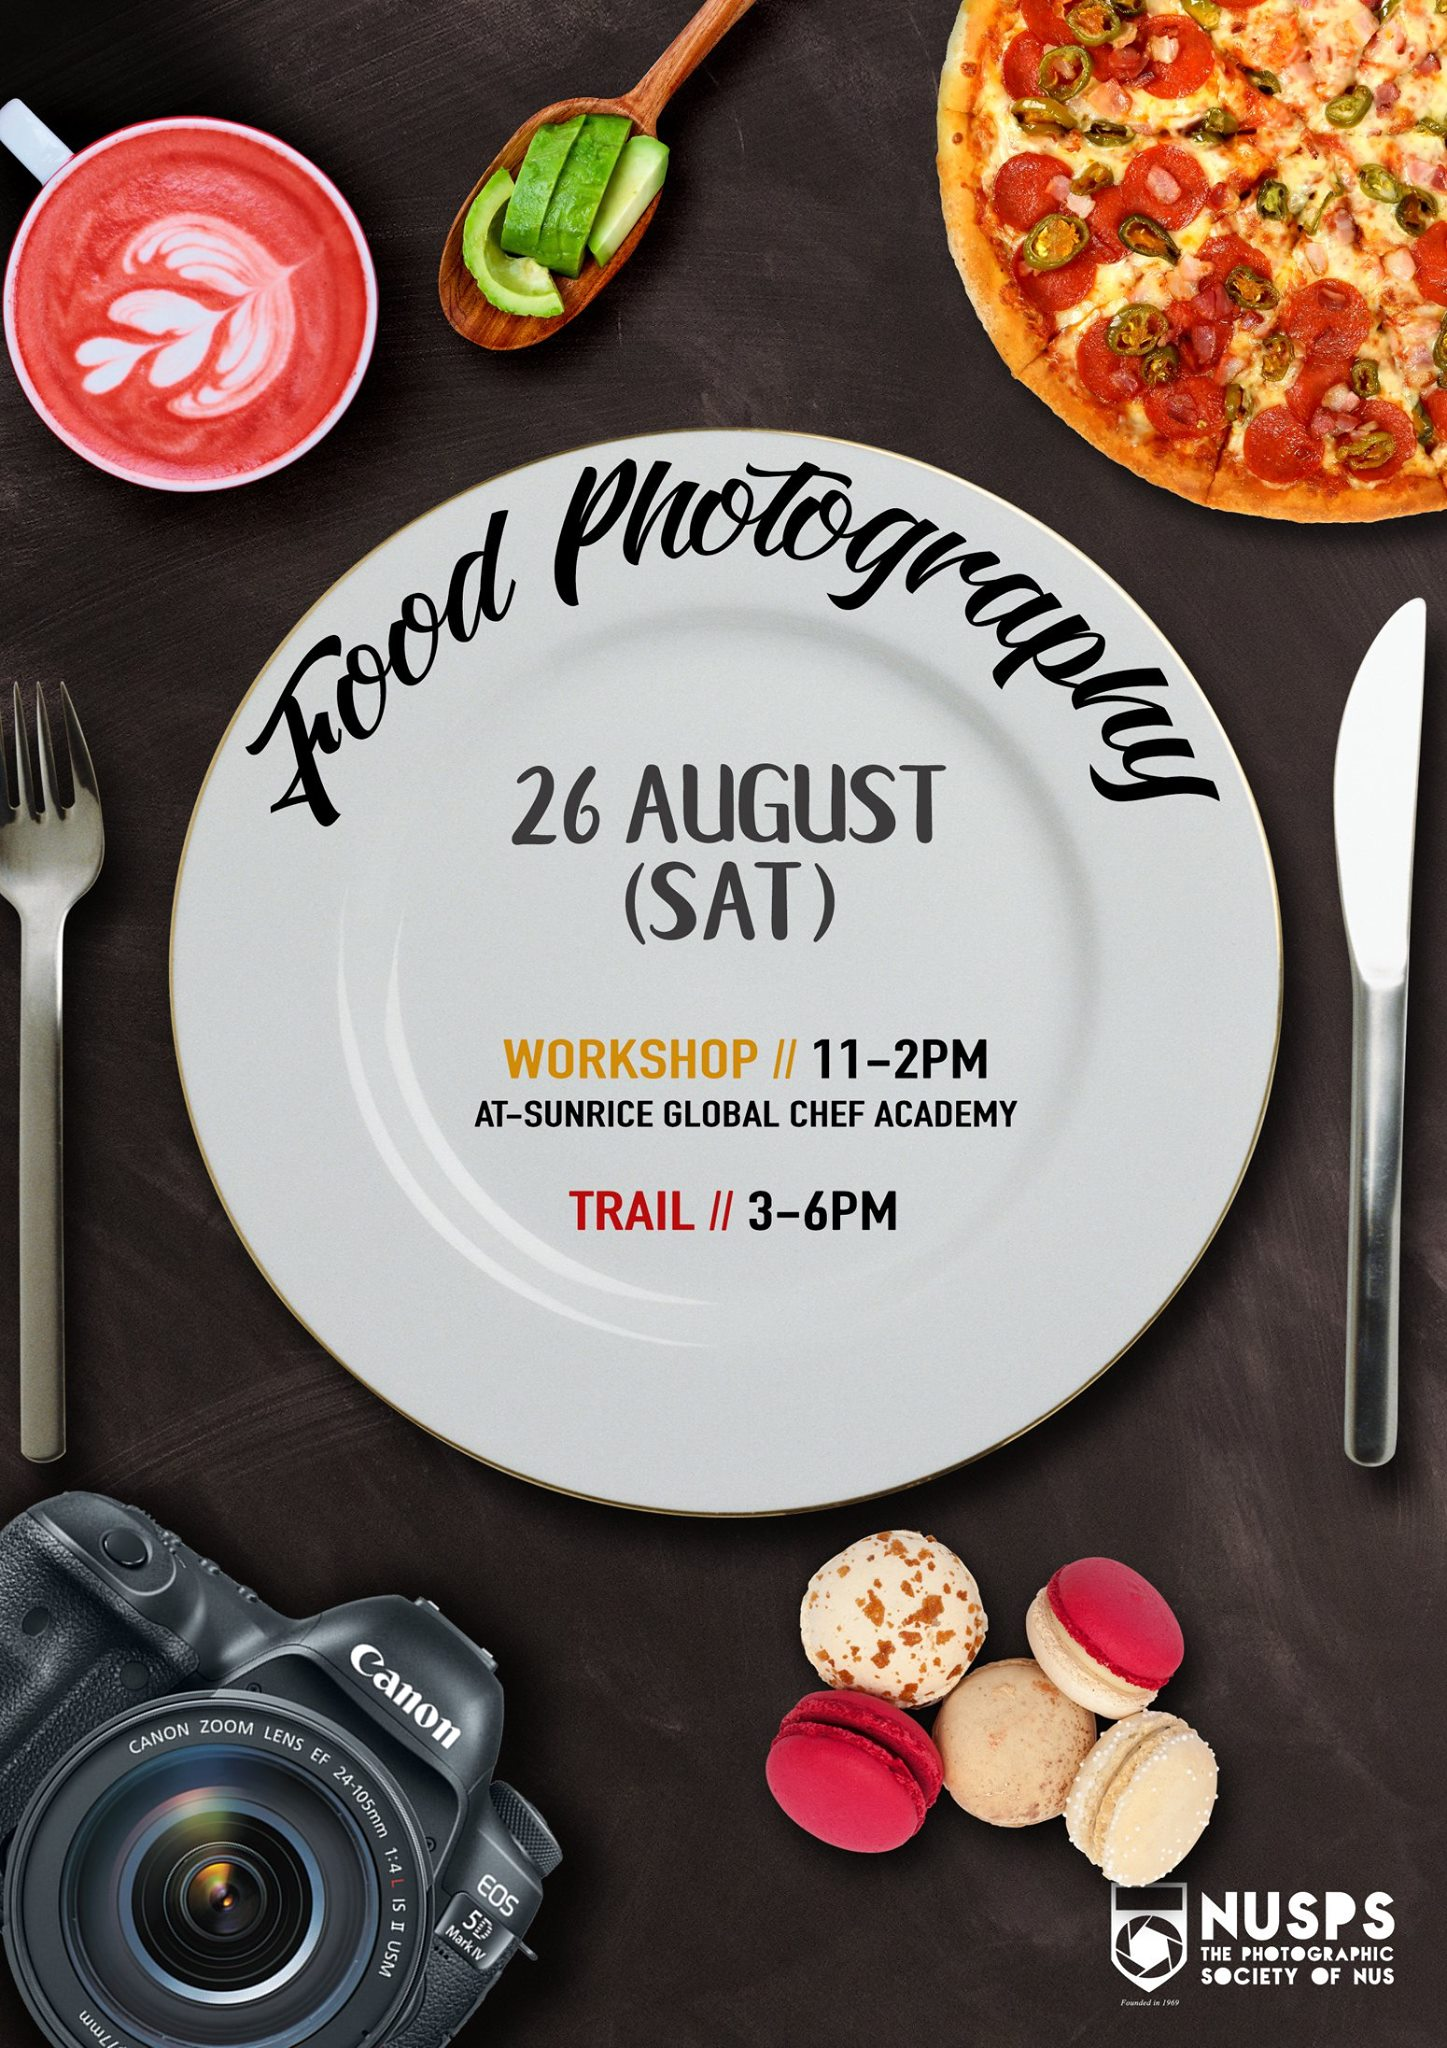 Food Photography Workshop and Trail 2017